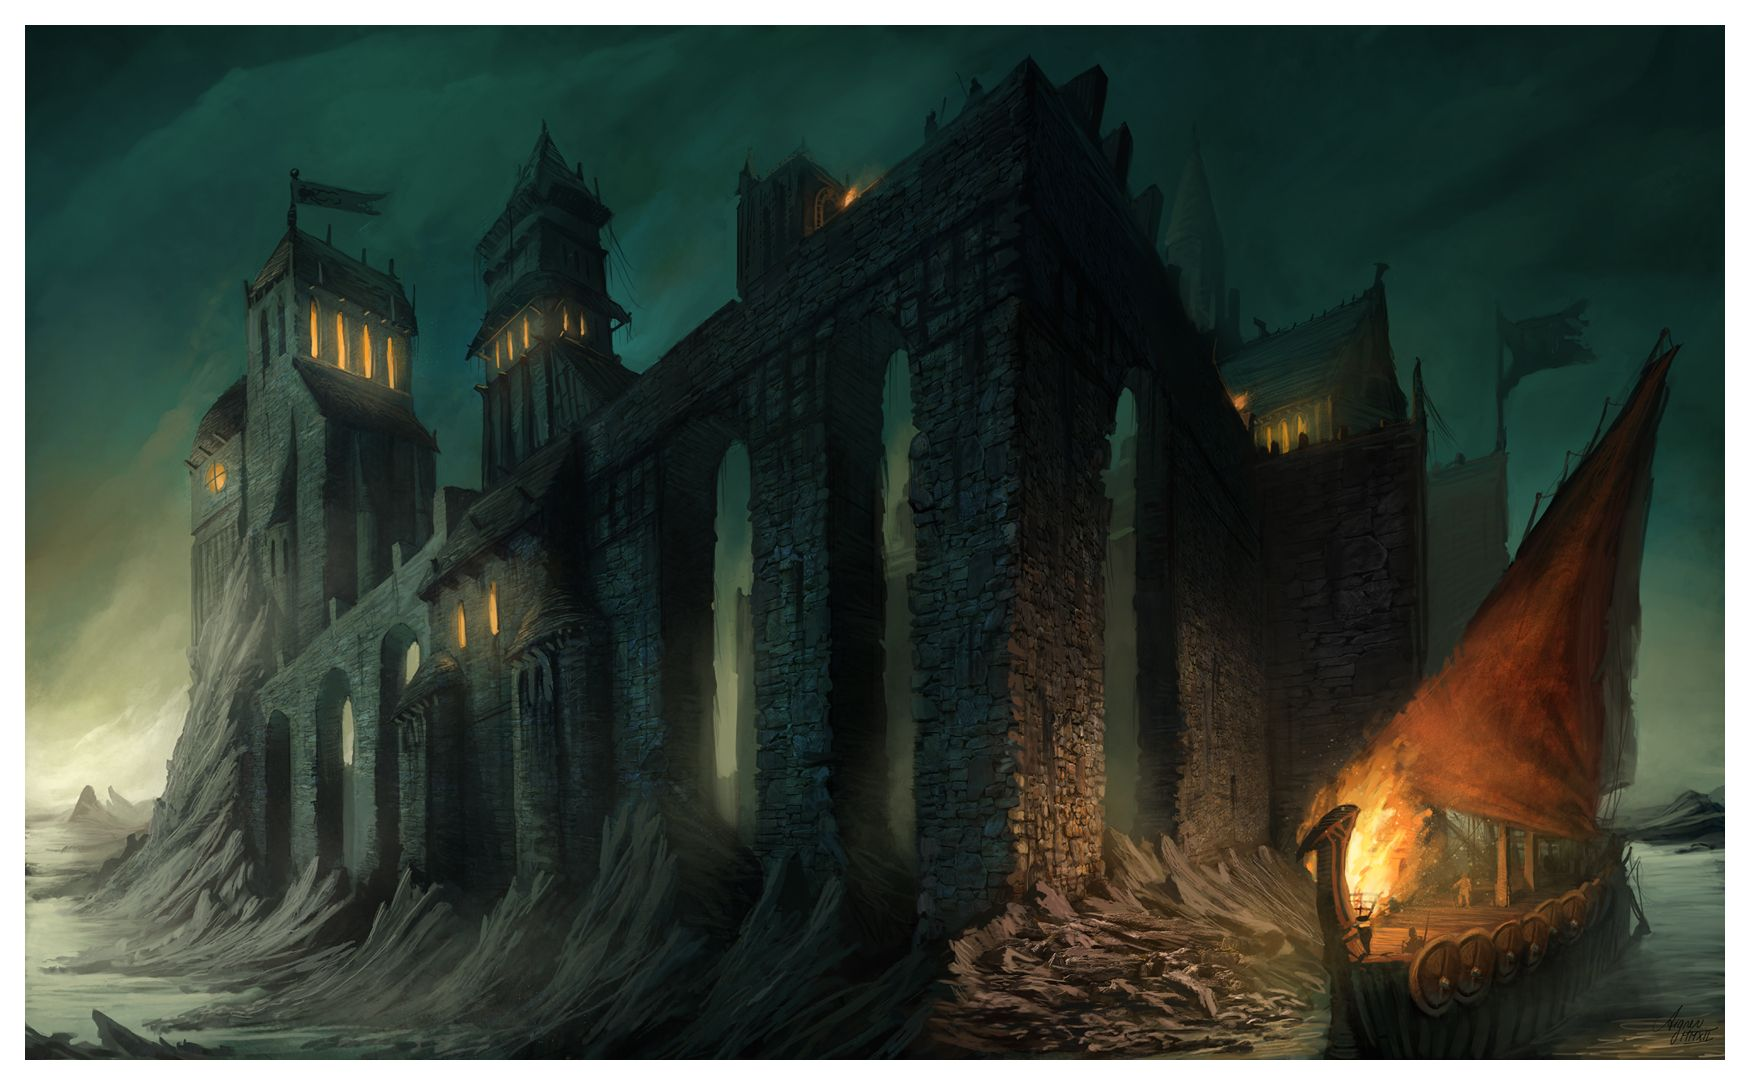 The Iron Islands By Reneaigner Deviantart Com With Images Game